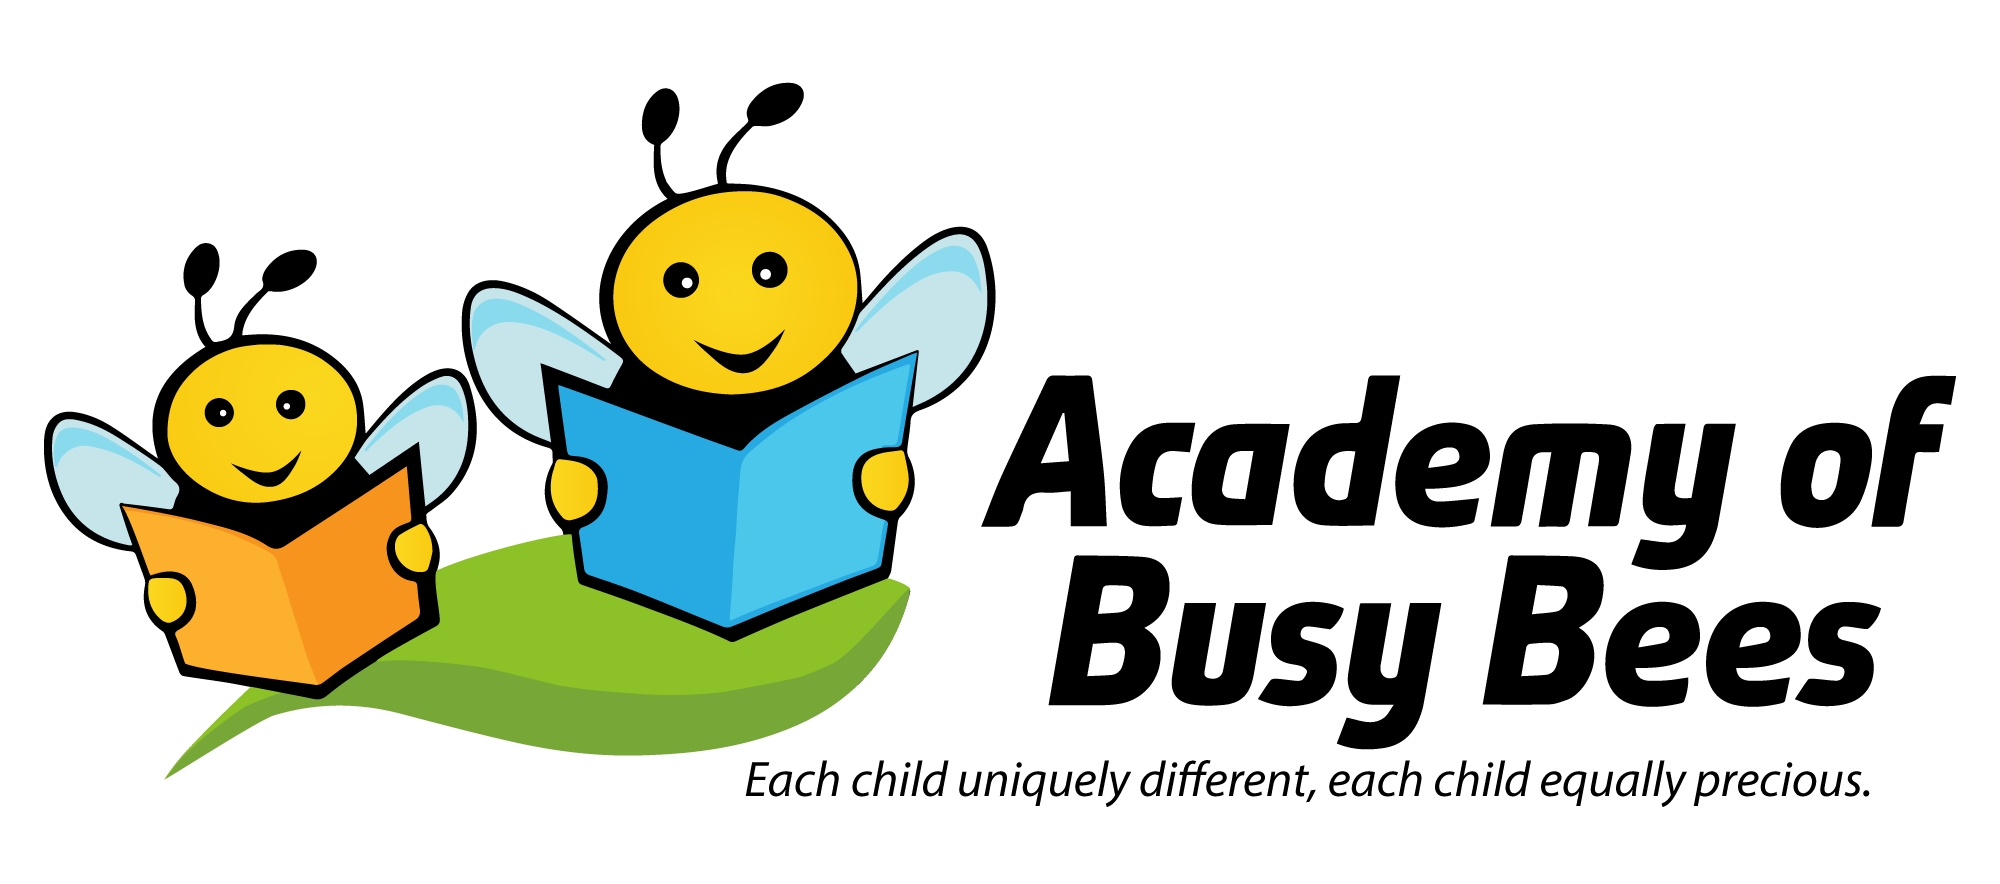 Academy of Busy Bees